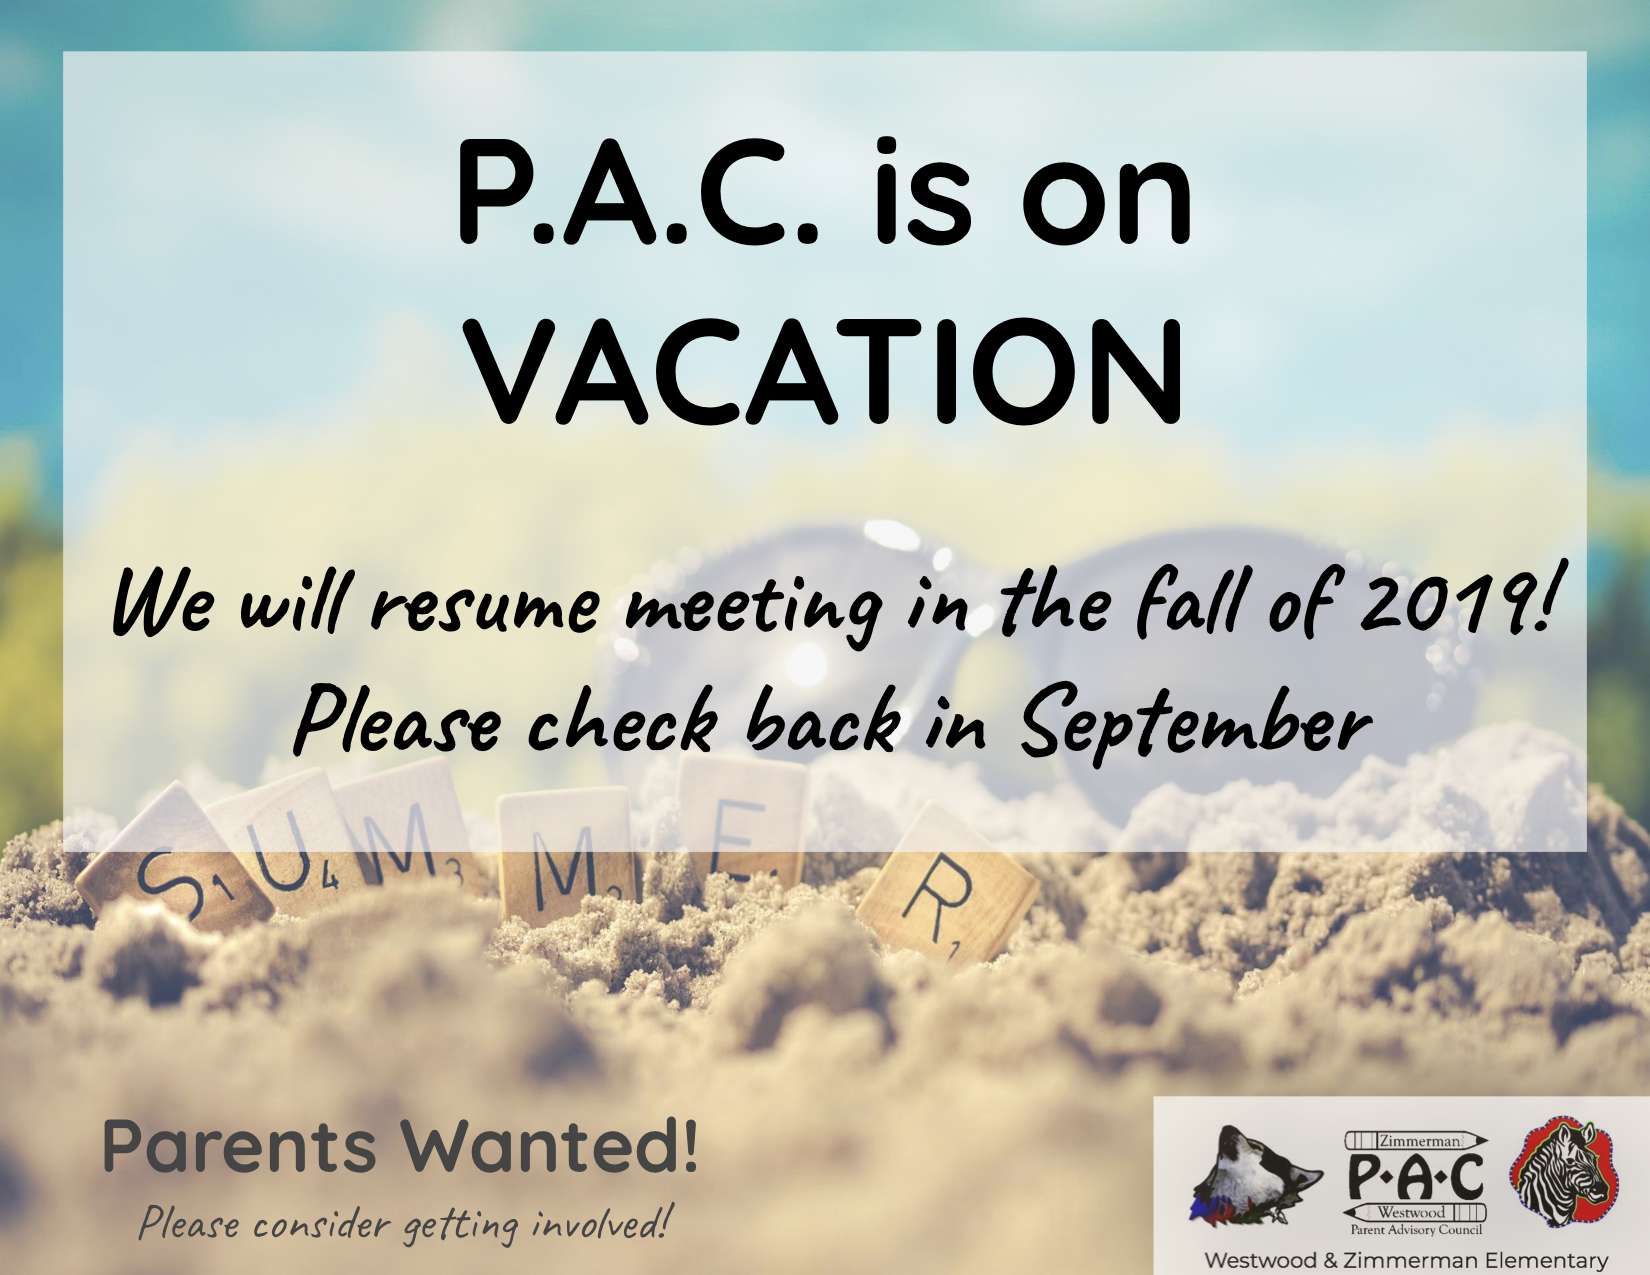 P.A.C. is on Vacation Flyer